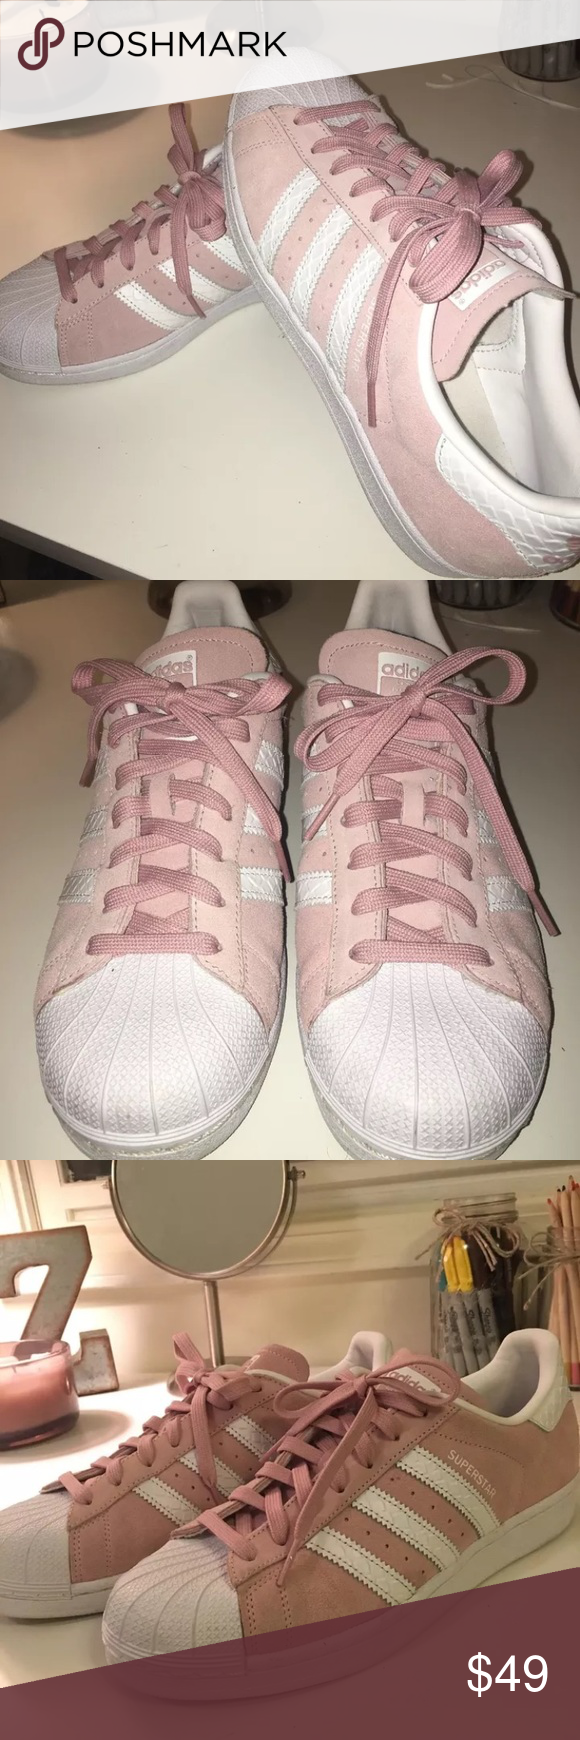 d4ba10917ef Adidas LIMITED EDITION superstar pink suede size 9 Women s size 9 — only  worn 3 times